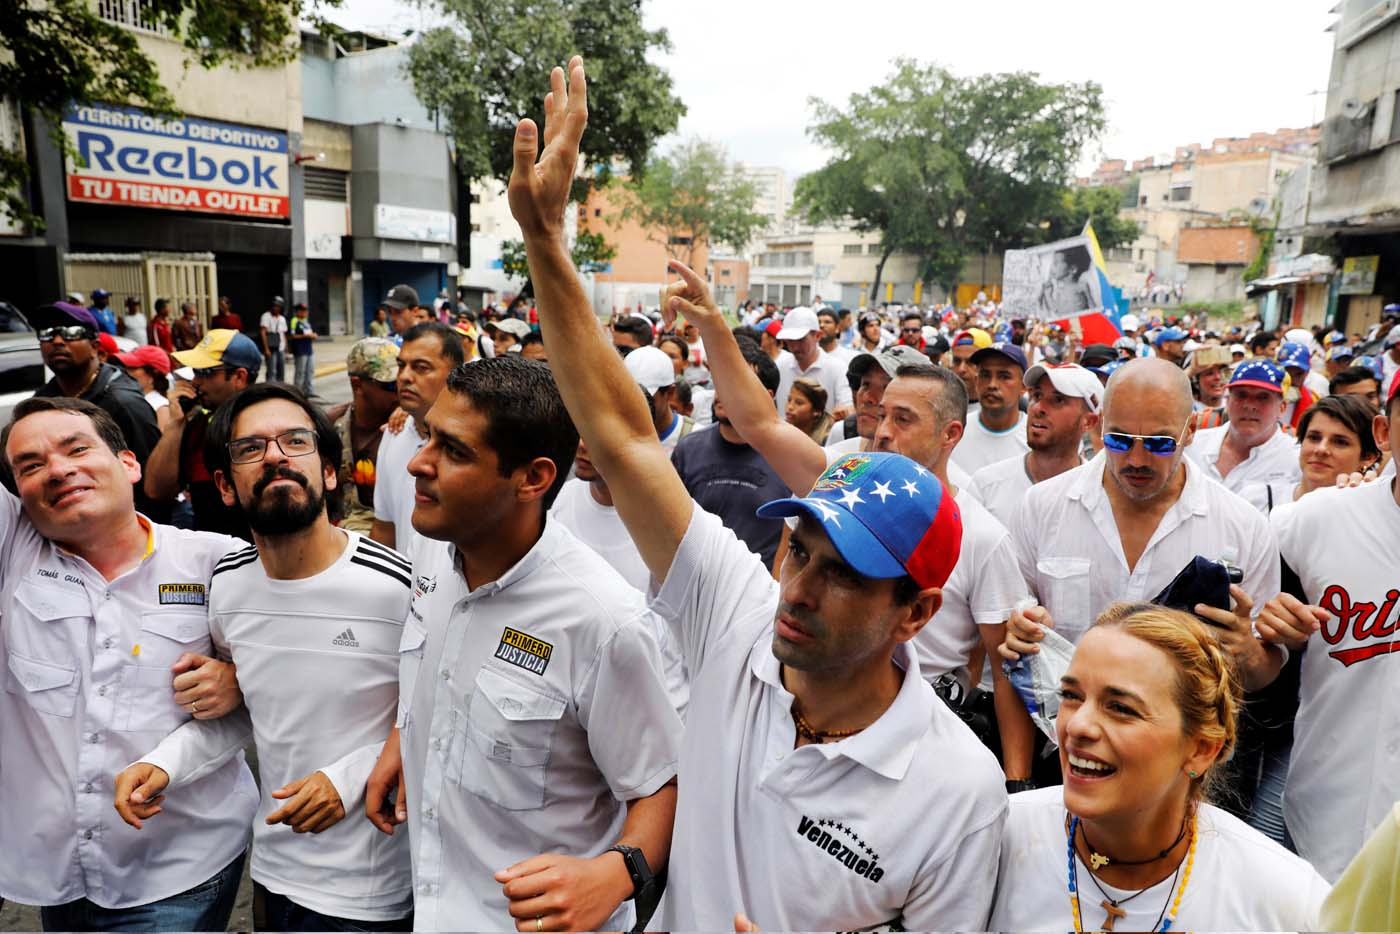 Lawmakers walk together with Venezuelan opposition leader and Governor of Miranda state Henrique Capriles (2nd R) and Lilian Tintori, wife of jailed opposition leader Leopoldo Lopez, as they take part in a rally to honour victims of violence during a protest against Venezuela's President Nicolas Maduro's government in Caracas, Venezuela, April 22, 2017. REUTERS/Carlos Garcia Rawlins